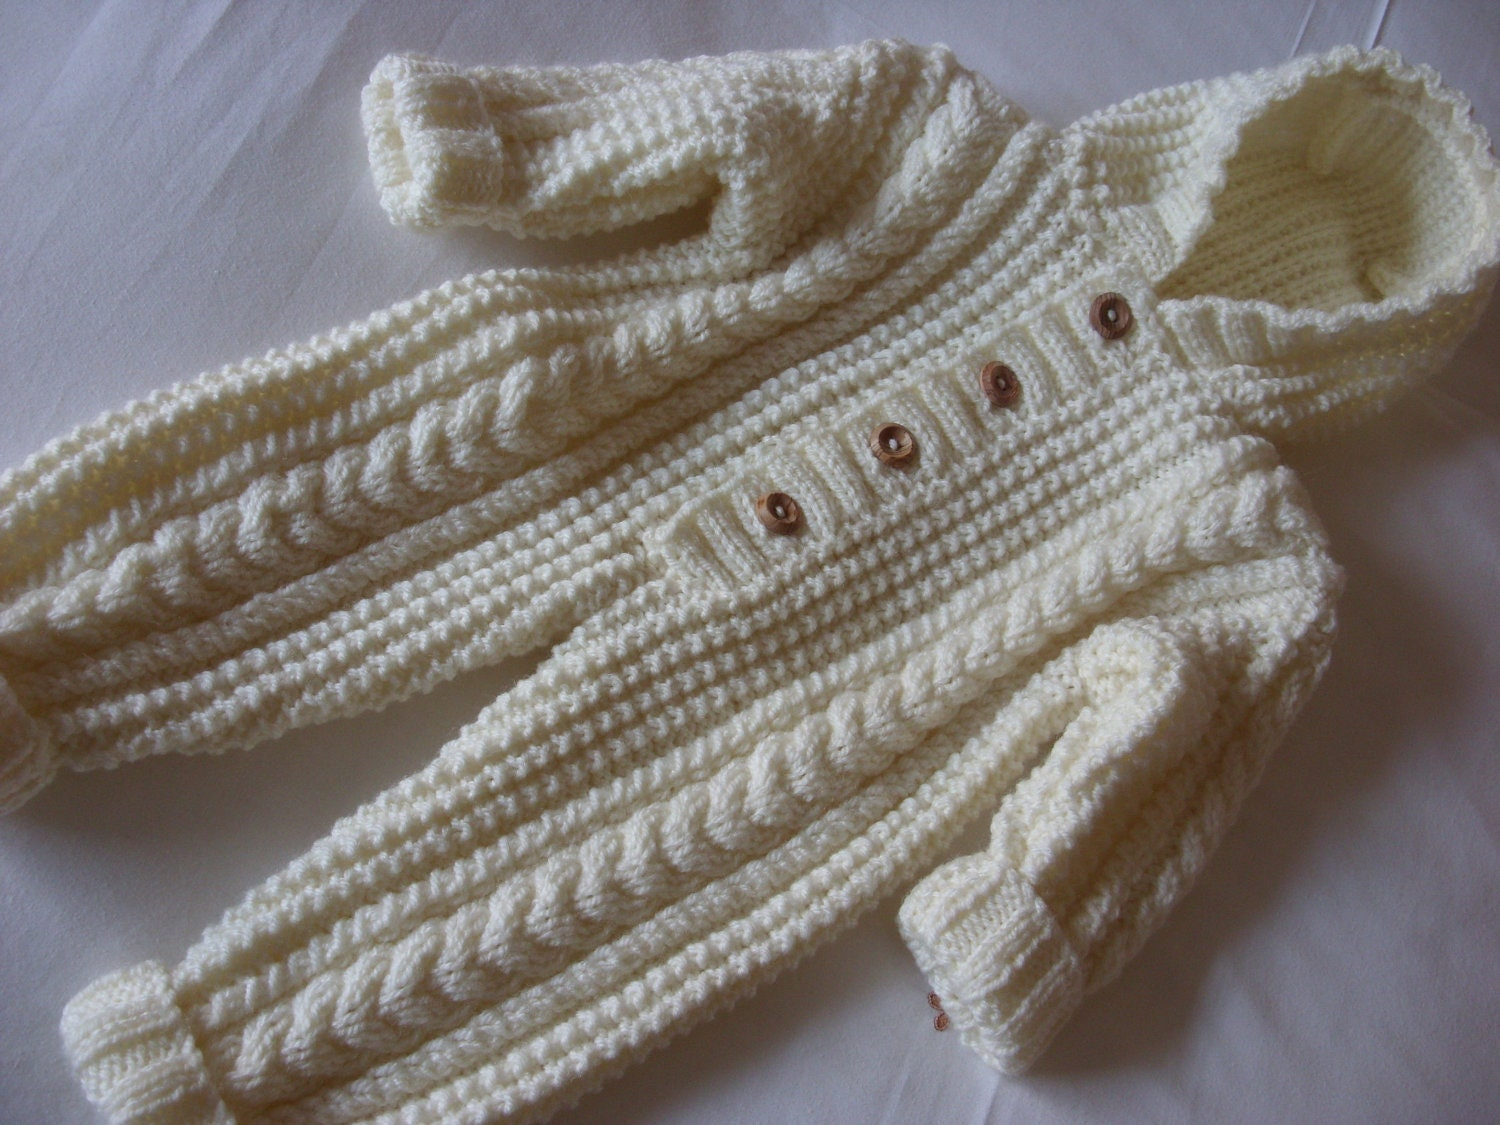 Knitted All In One Baby Suit Pattern : Cream Aran Handknitted Baby All In One-Knitted by elisabeth76